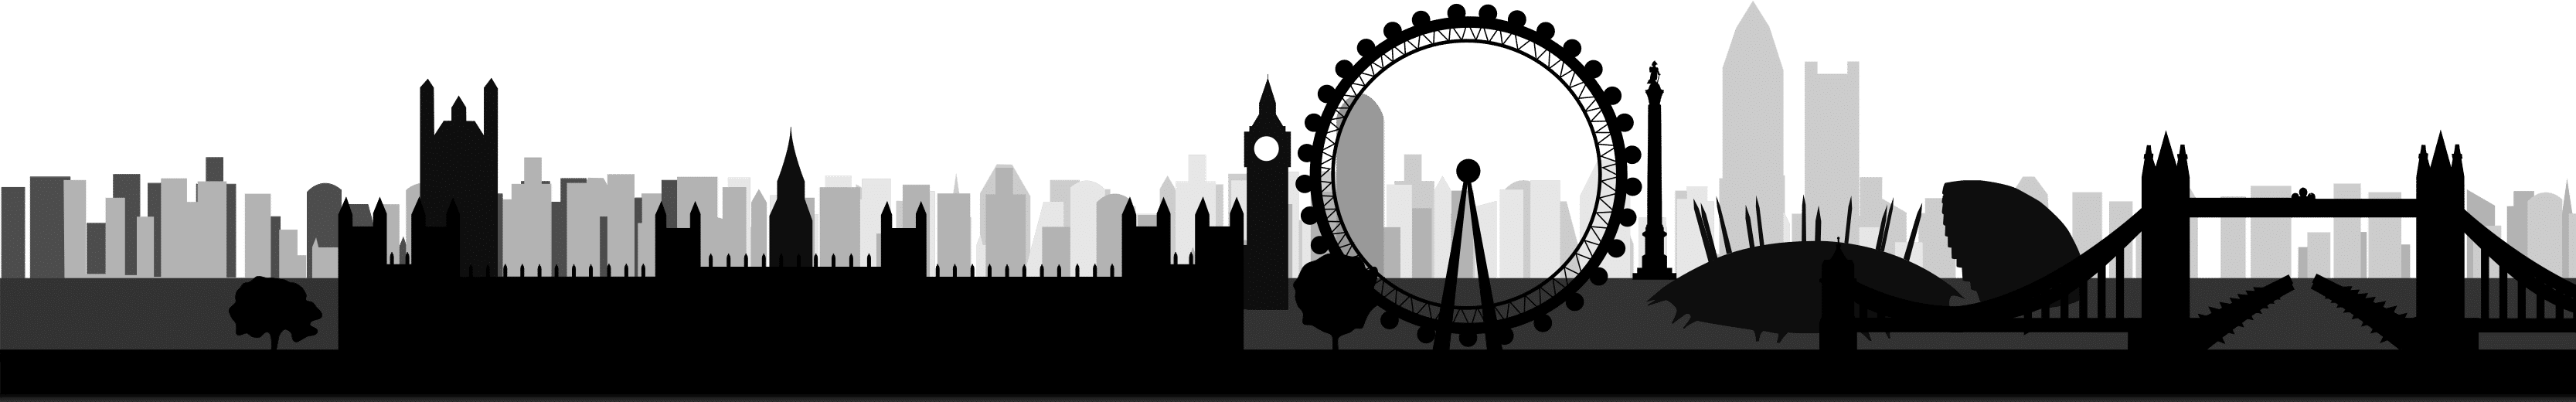 London clipart police london. Step by process to